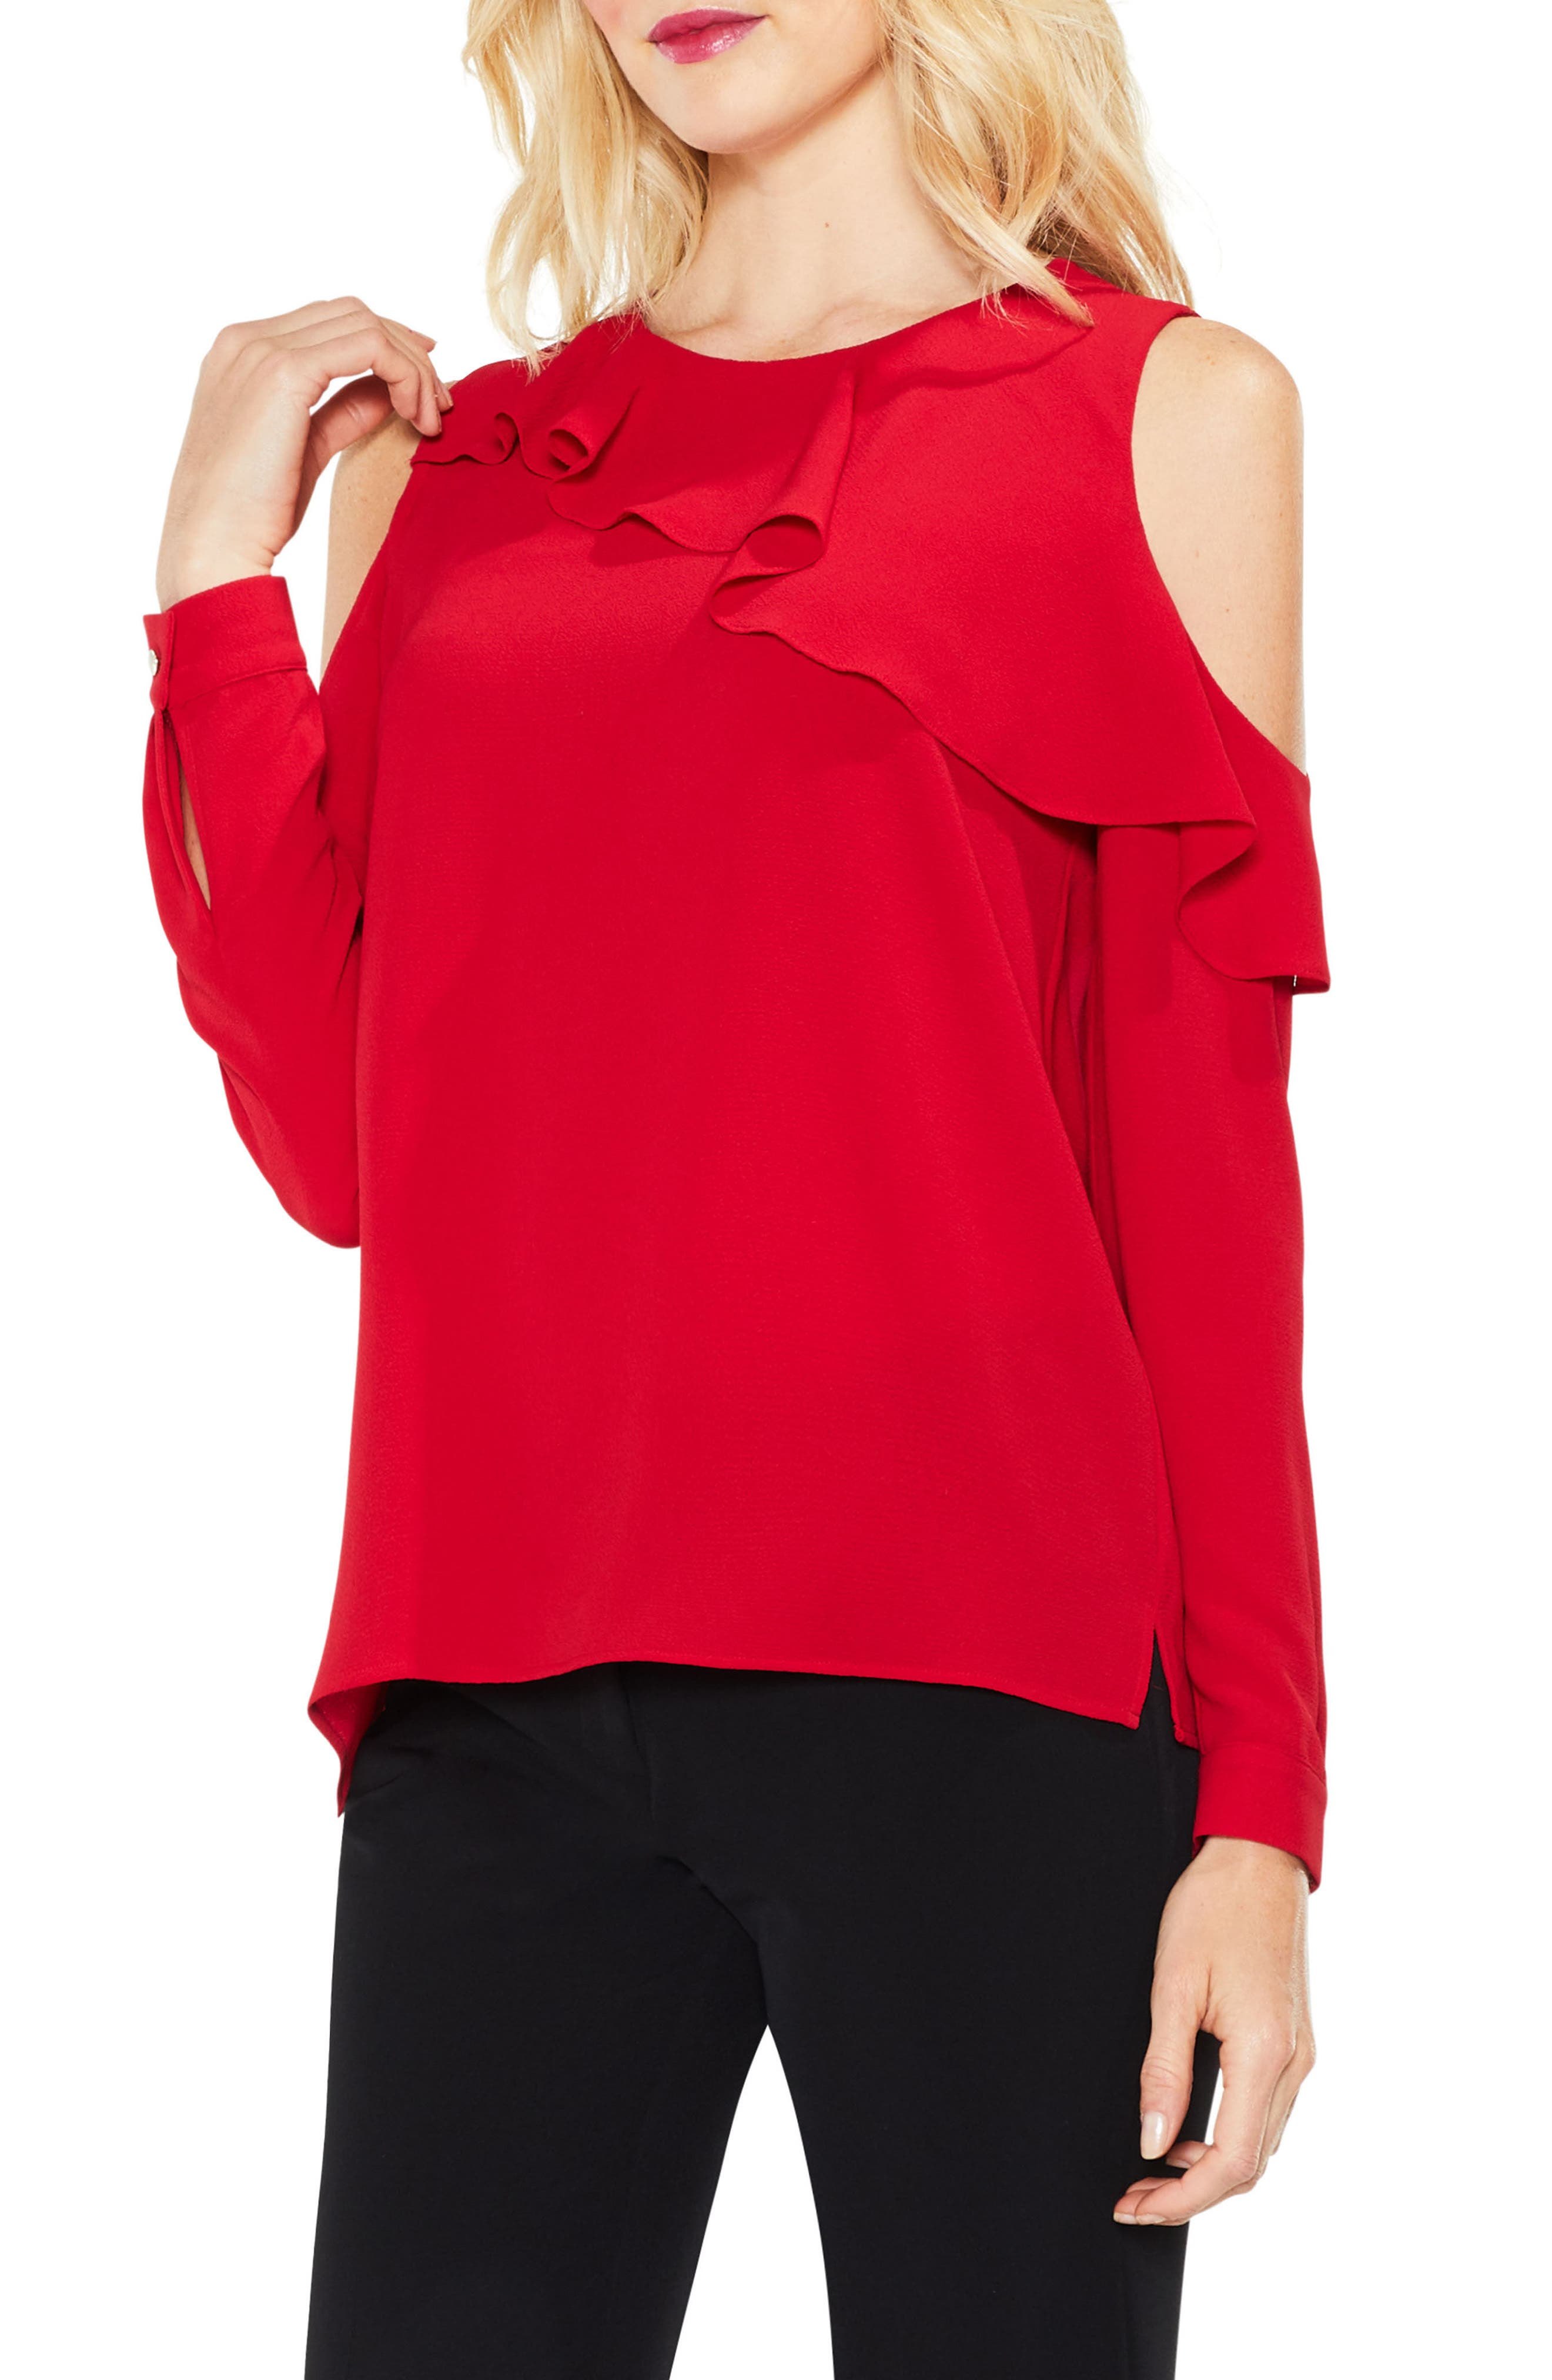 Alternate Image 1 Selected - Vince Camuto Ruffle Cold Shoulder Top (Regular & Petite)